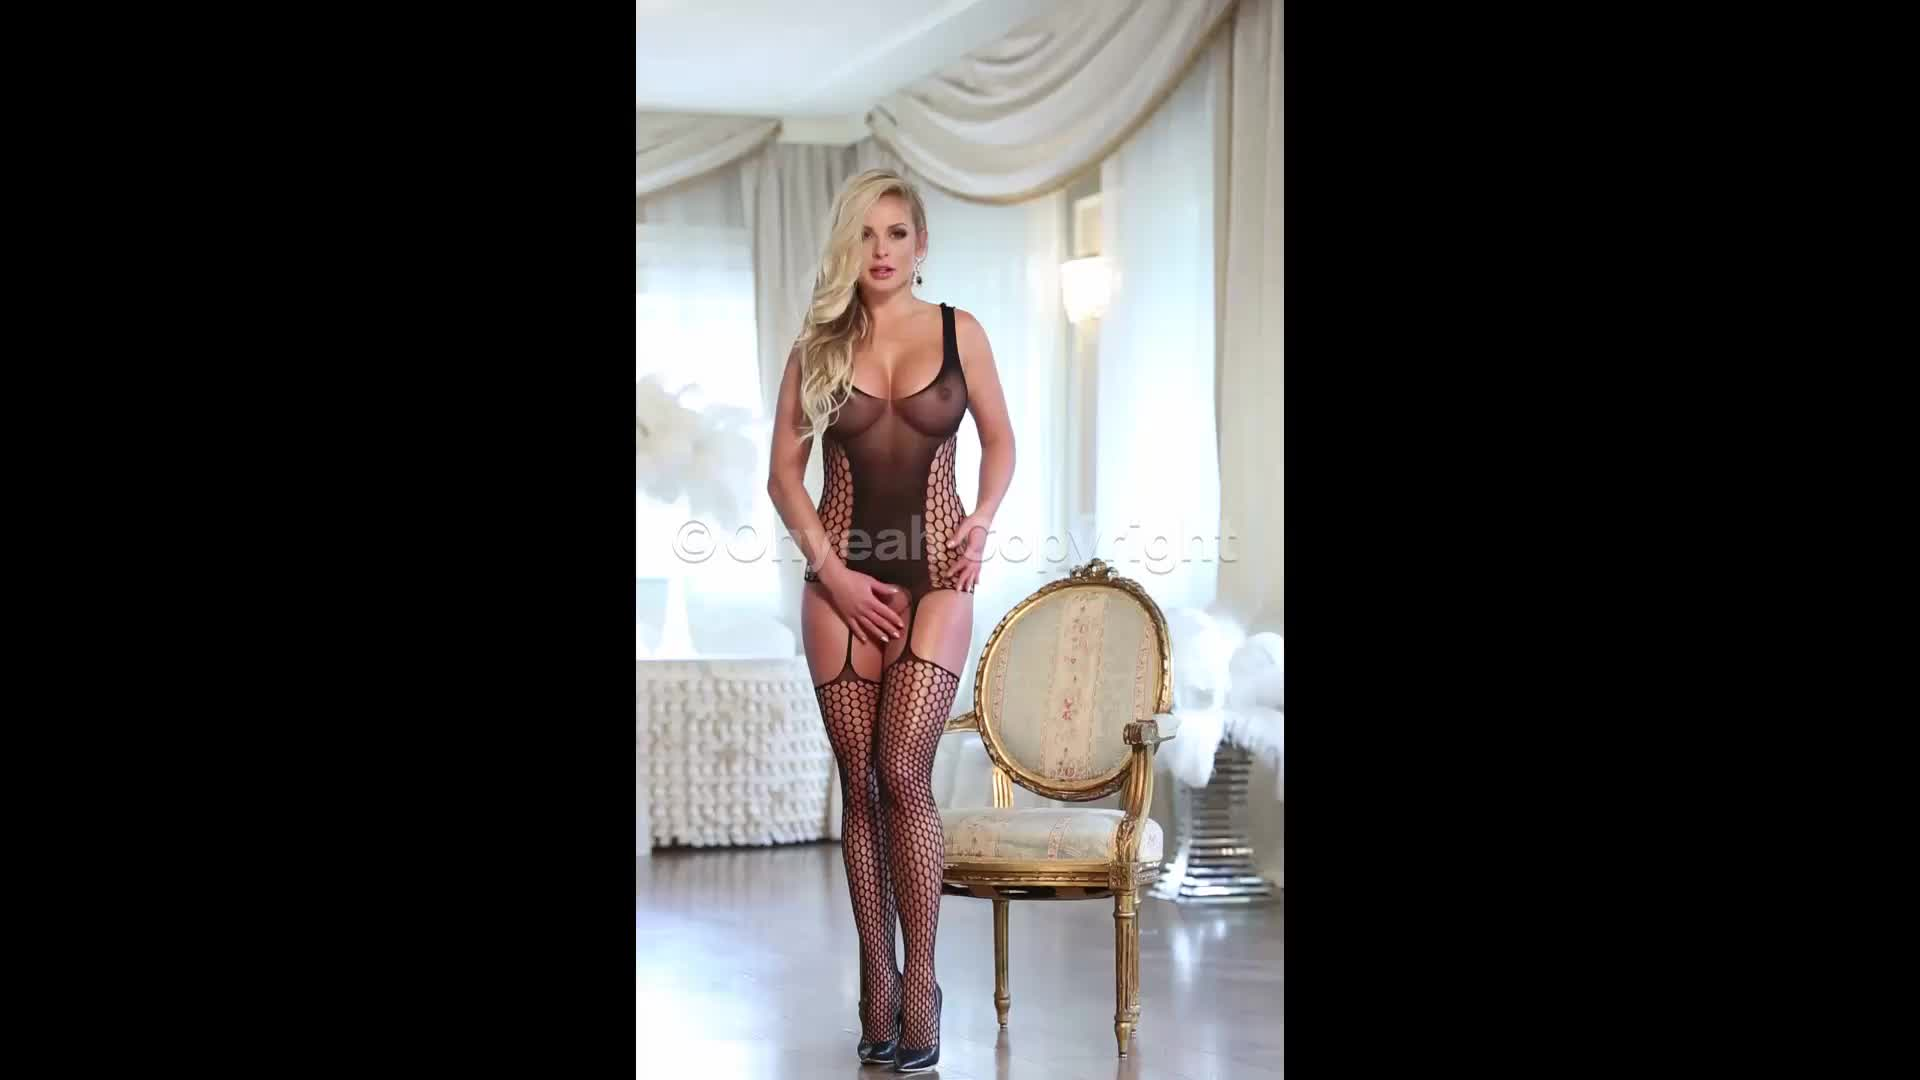 Inspection Packaging Pantyhose That 114